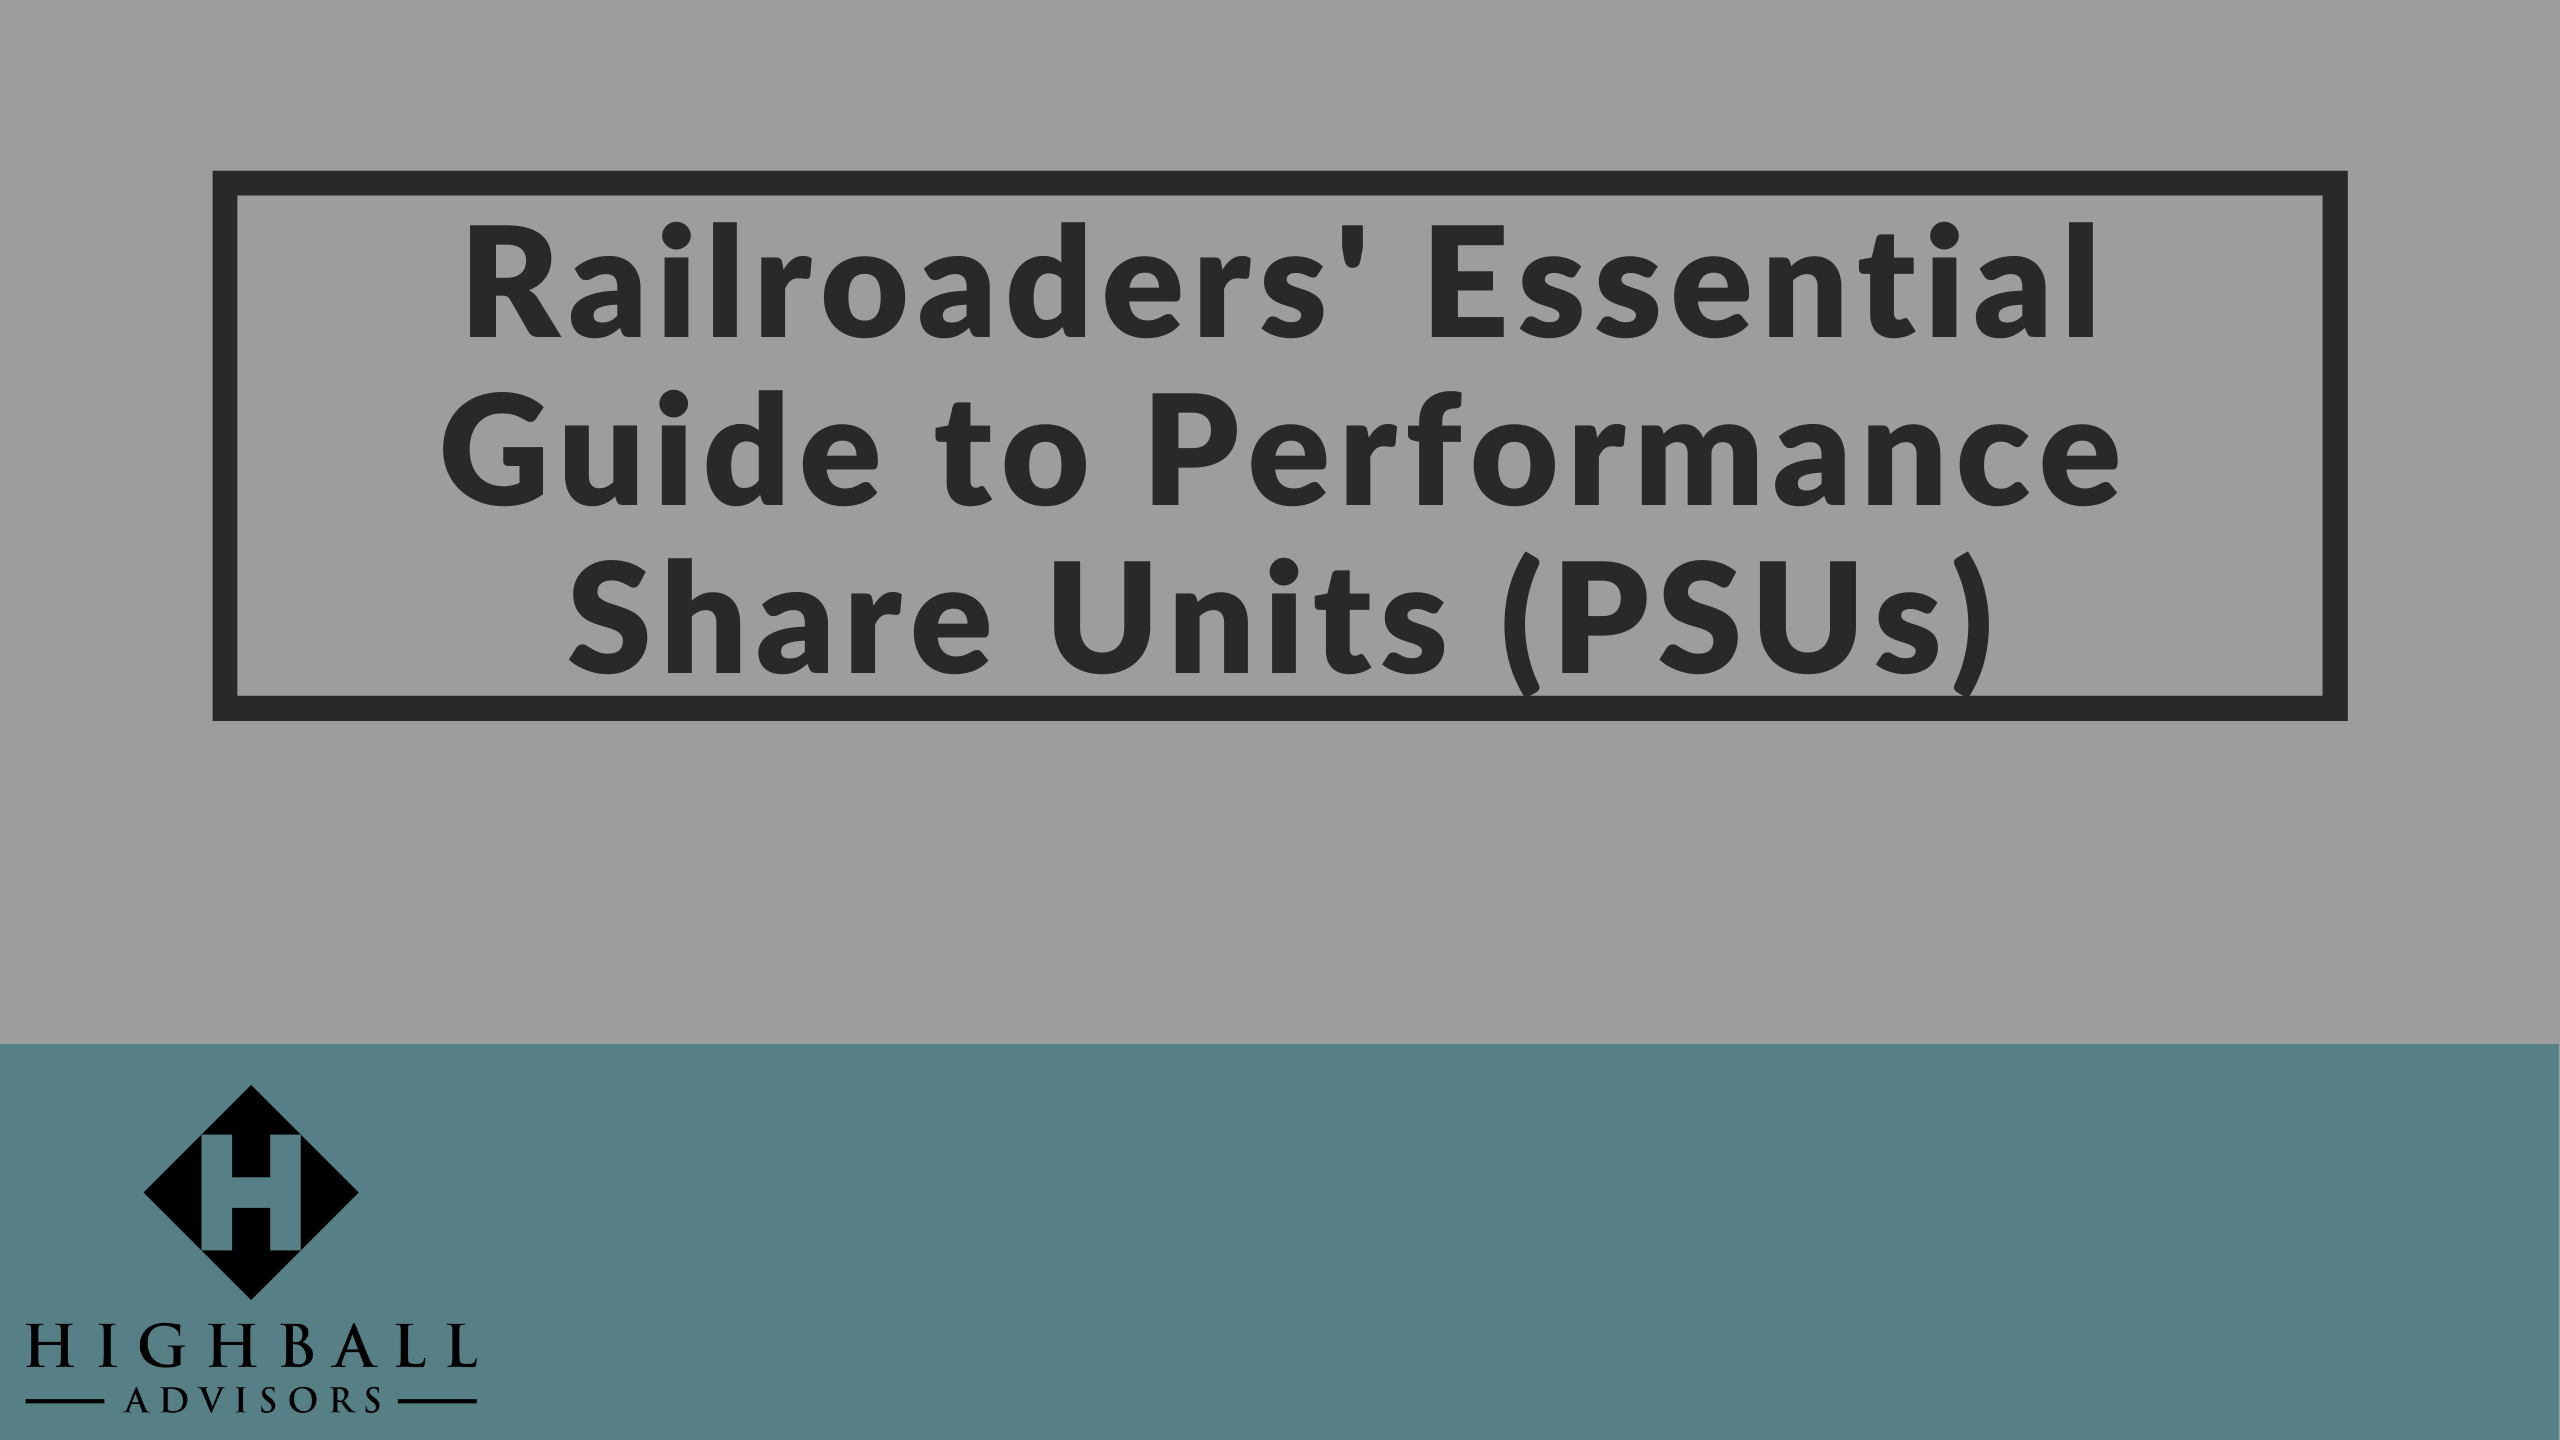 VIDEO: Railroaders' Essential Guide to Performance Share Units (PSUs) Thumbnail